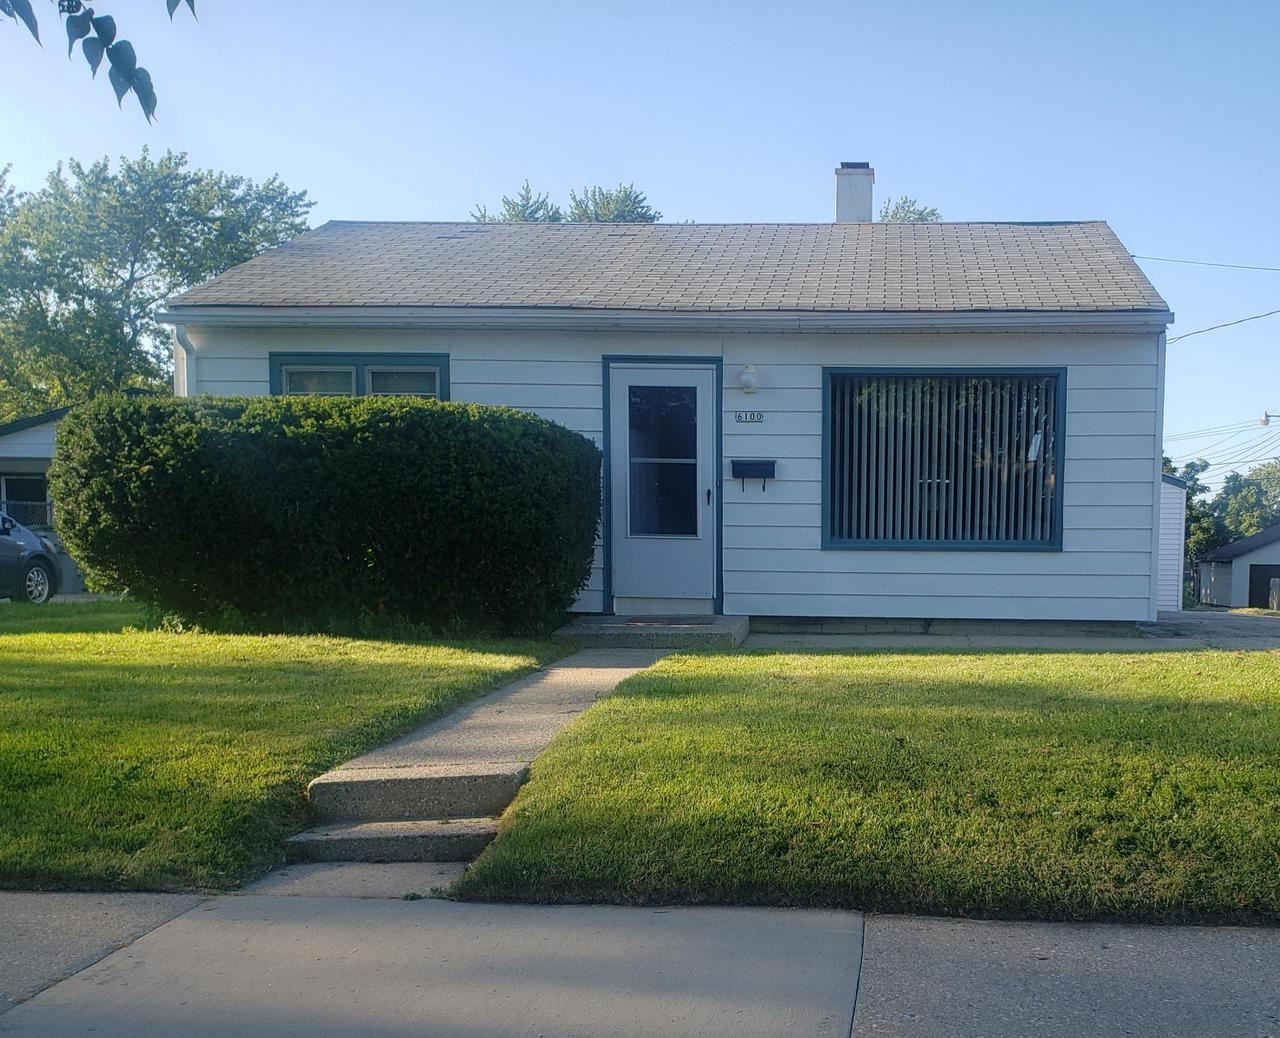 6100 W Holt Ave, Milwaukee, WI 53219 - MLS#: 1702984